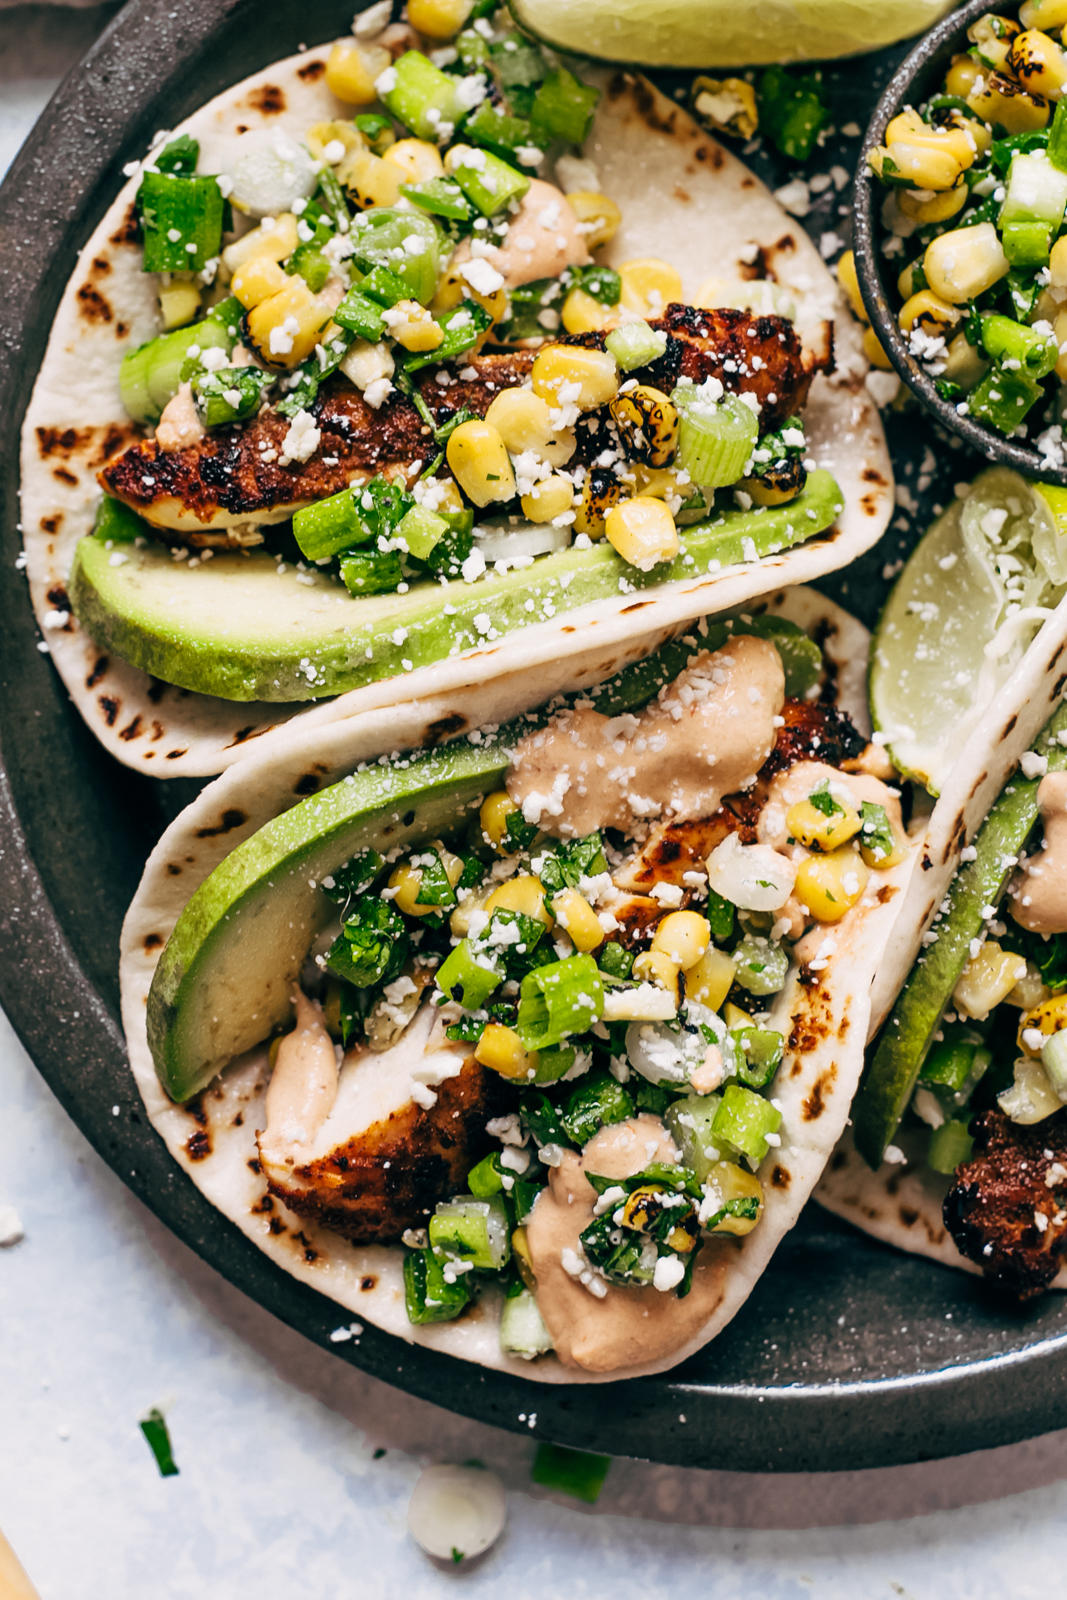 close up of tacos showing chicken, corn, scallions, avocados, topped with cotija cheese